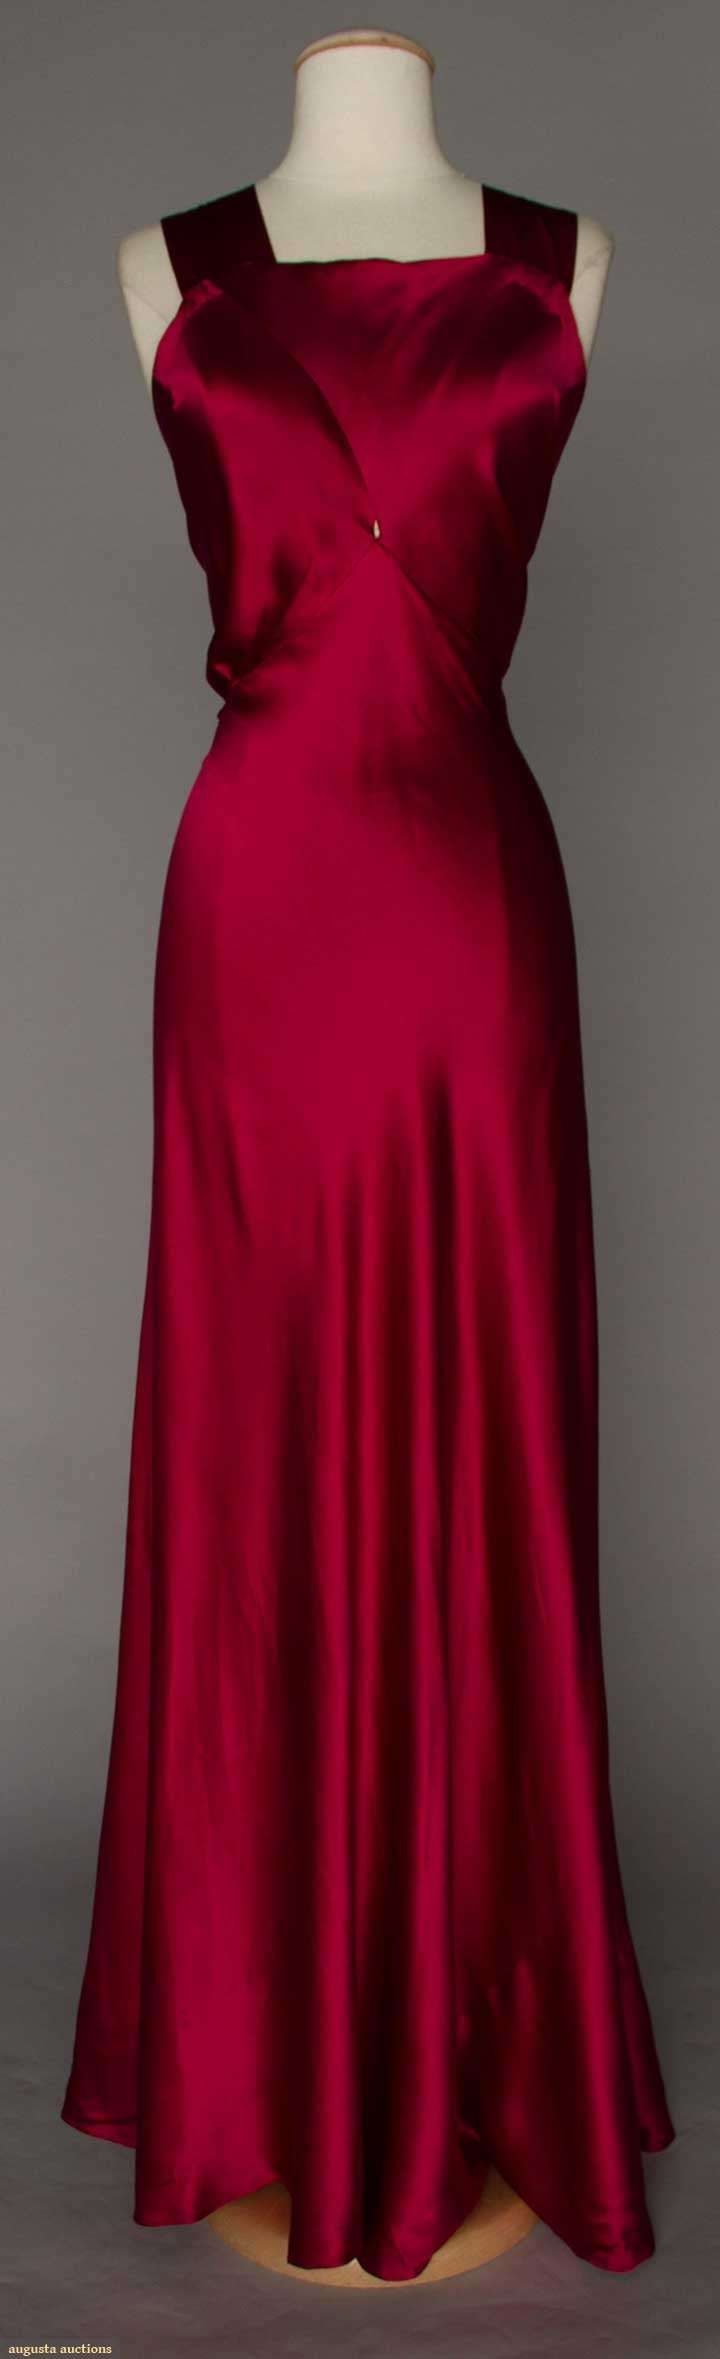 Bias Cut Gown (image 1) | 1930s | silk charmeuse | Augusta Auctions | April 20, 2016/Lot 309